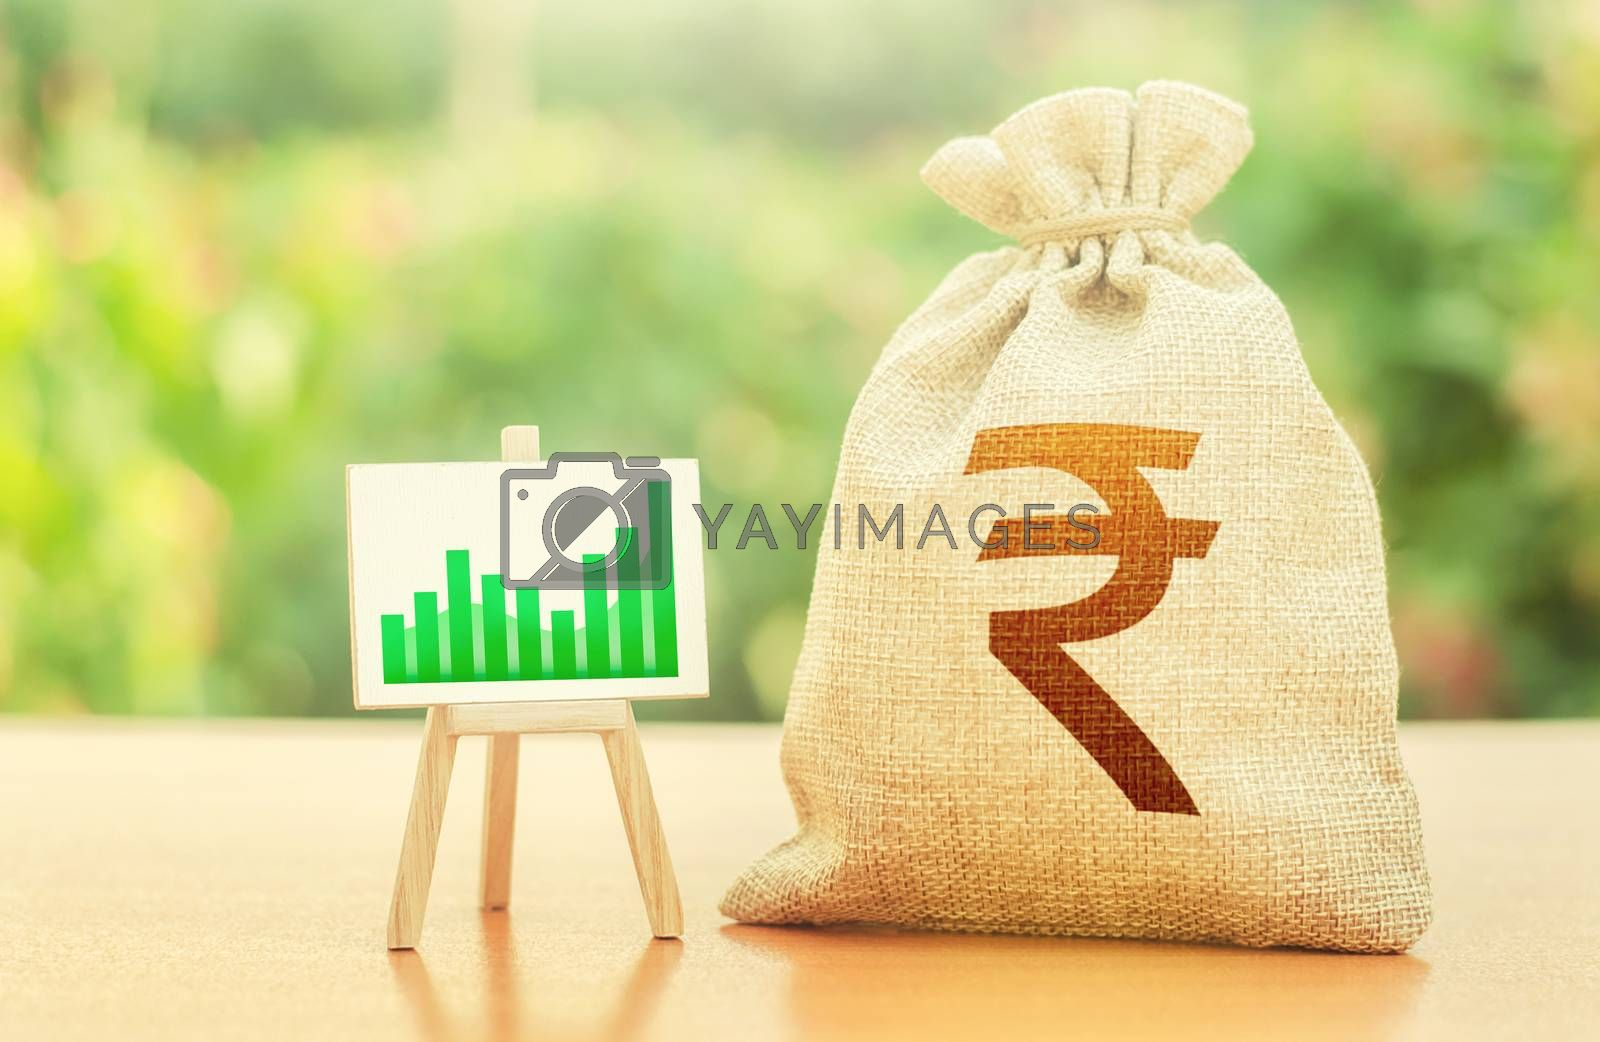 Indian rupee money bag and easel with green positive growth graph. Economic development. Business sentiment. High deposits profitability. Recovery and growth of economy, good investment attractiveness